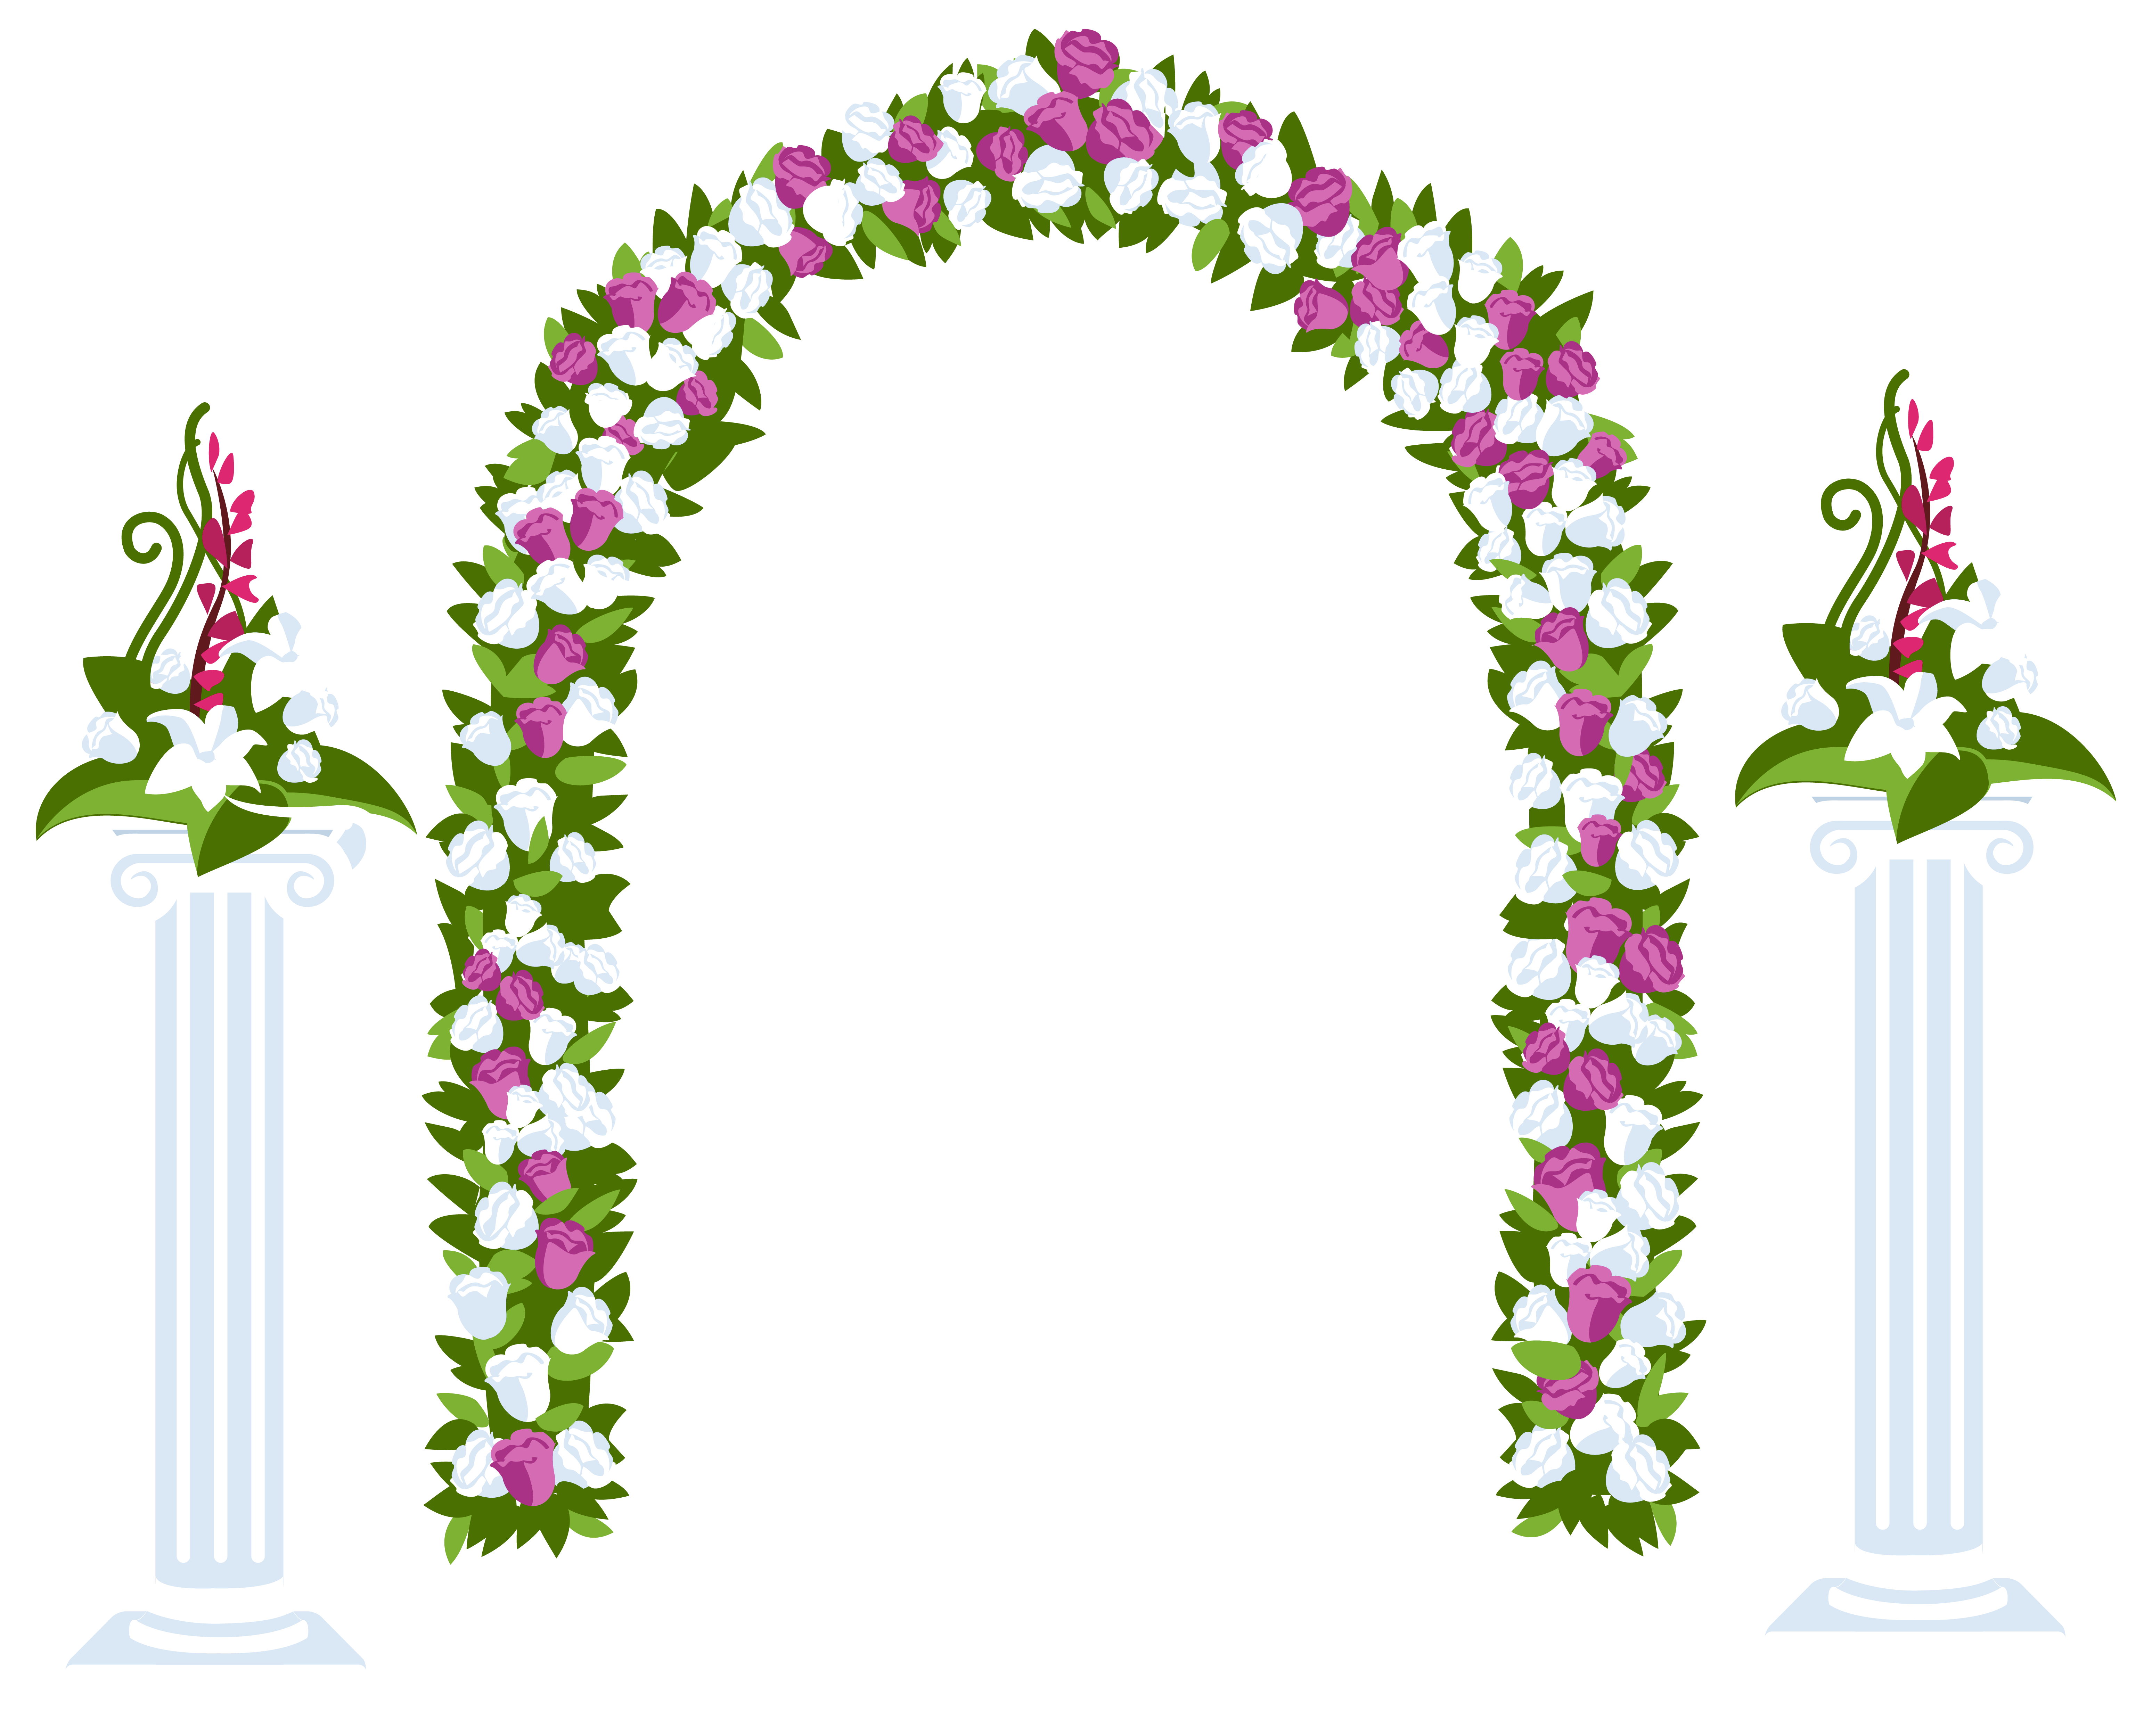 Floral Arch and Columns.